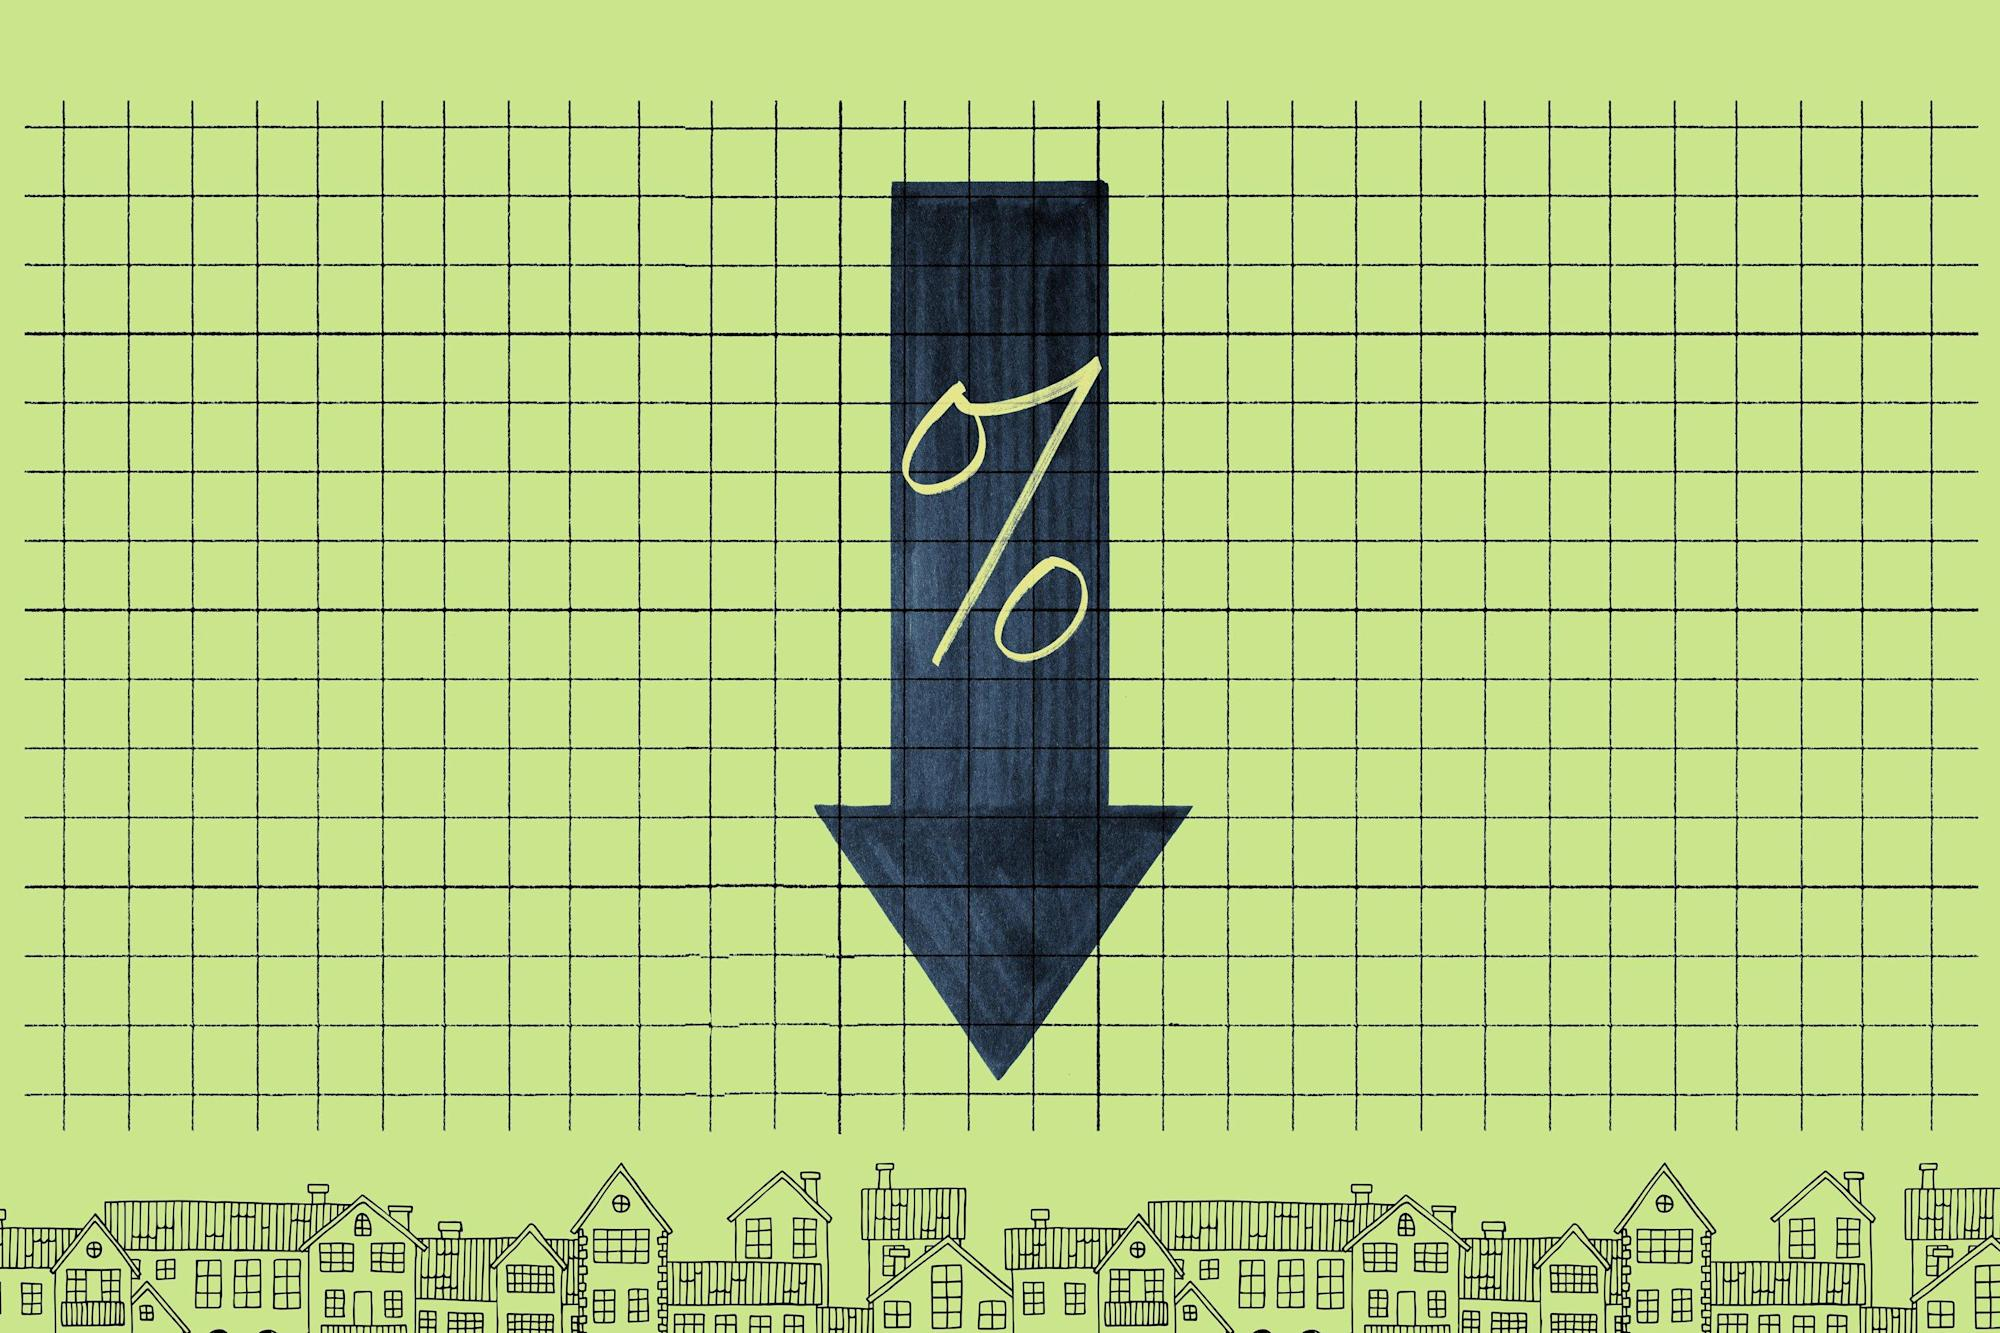 Current Mortgage Rates Drop to 2.9%